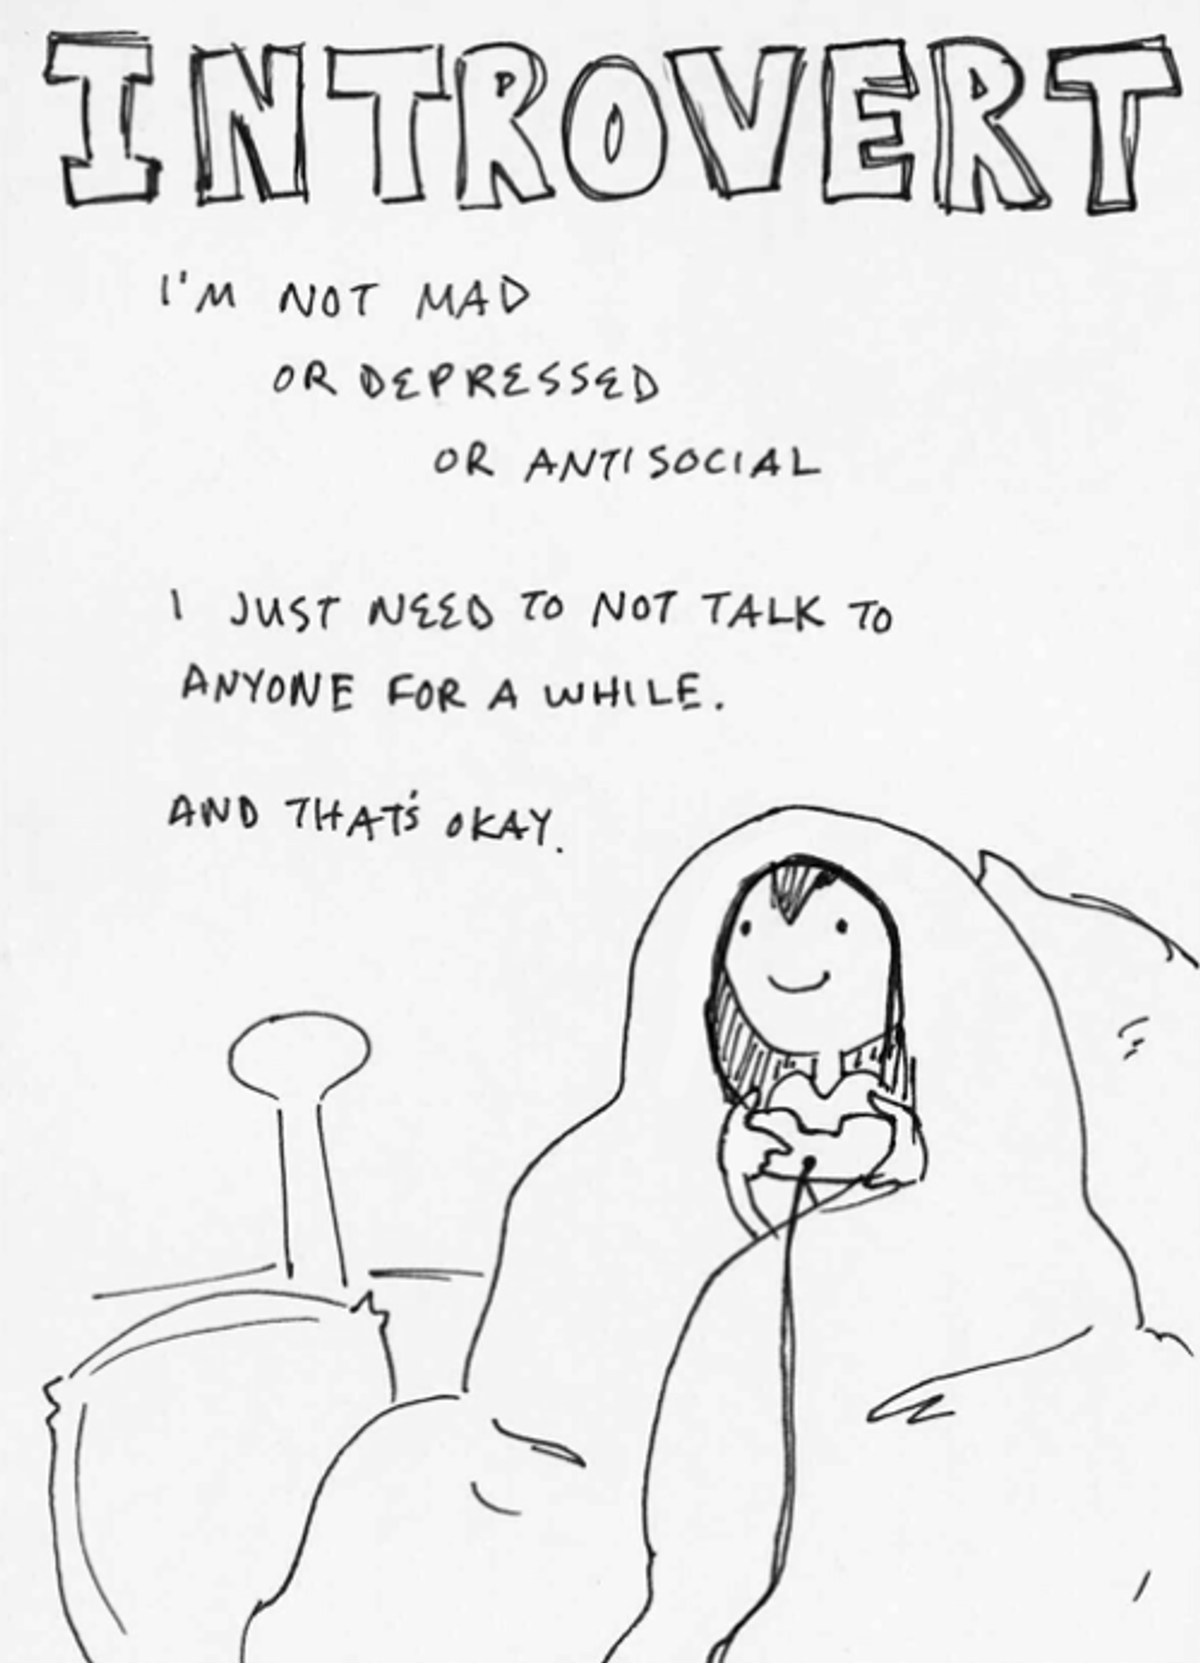 5 Common Misconceptions About Introverts